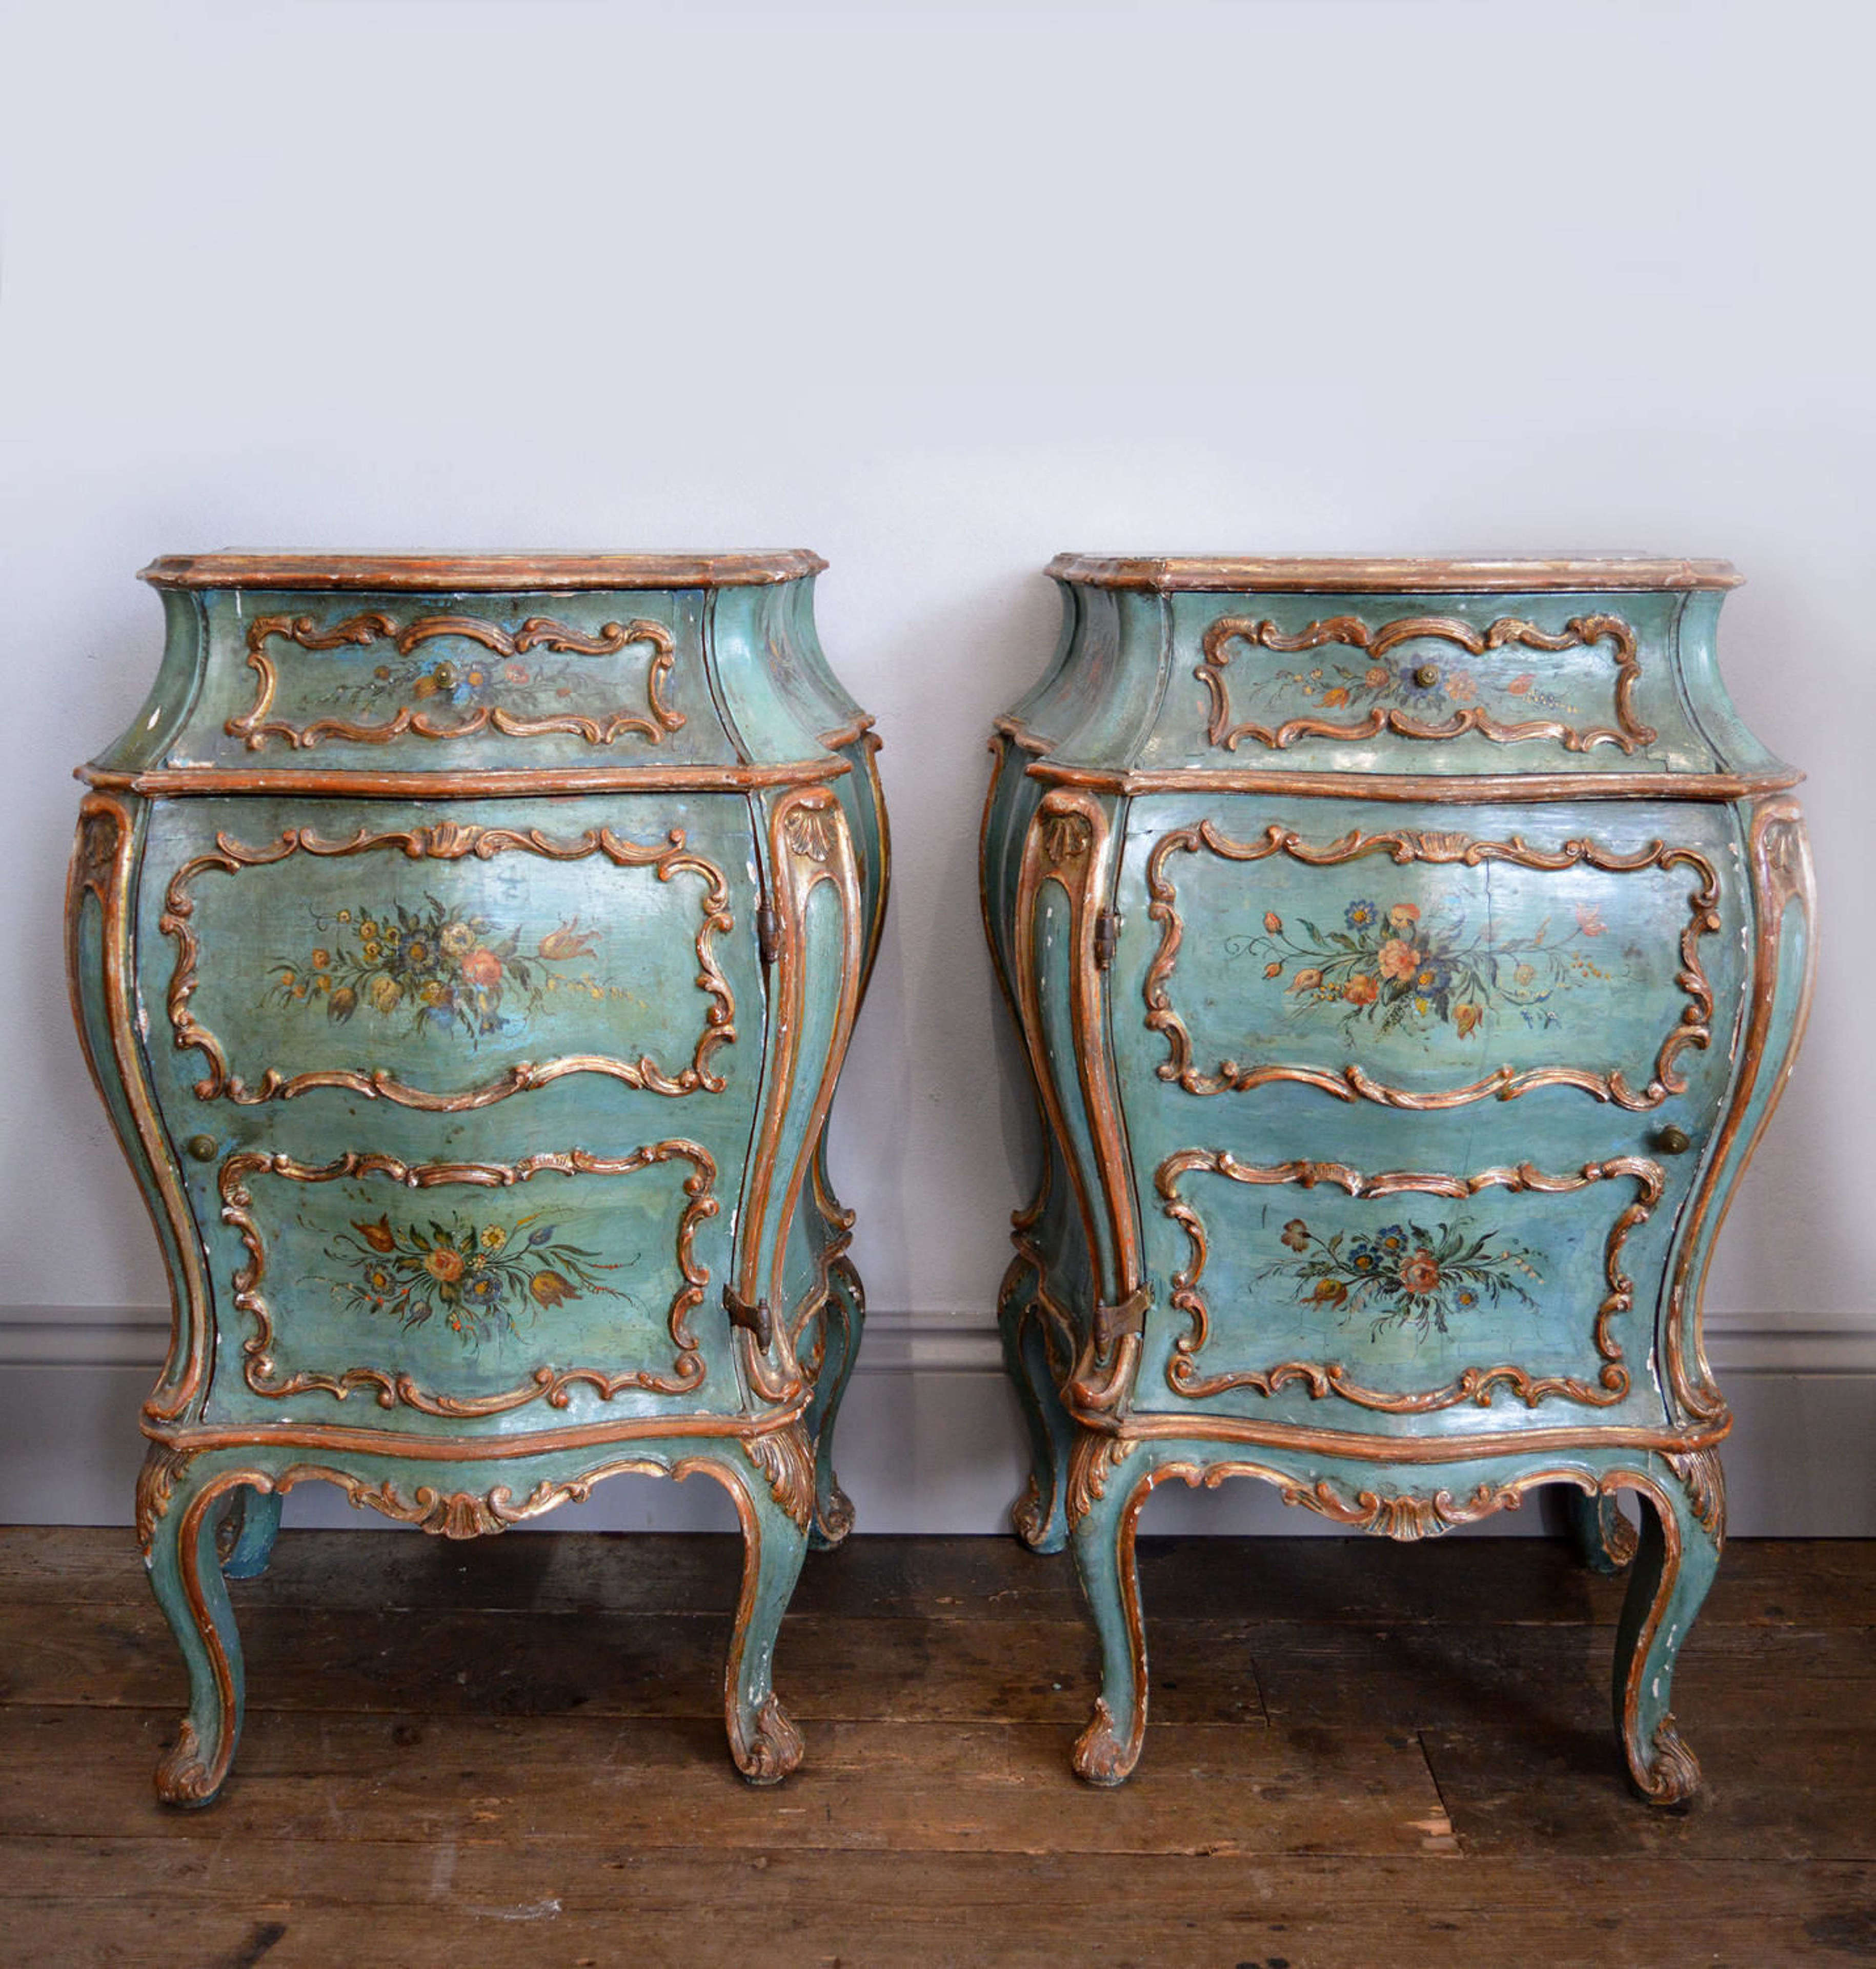 Pair of Hand Painted Venetian Bedside cabinets